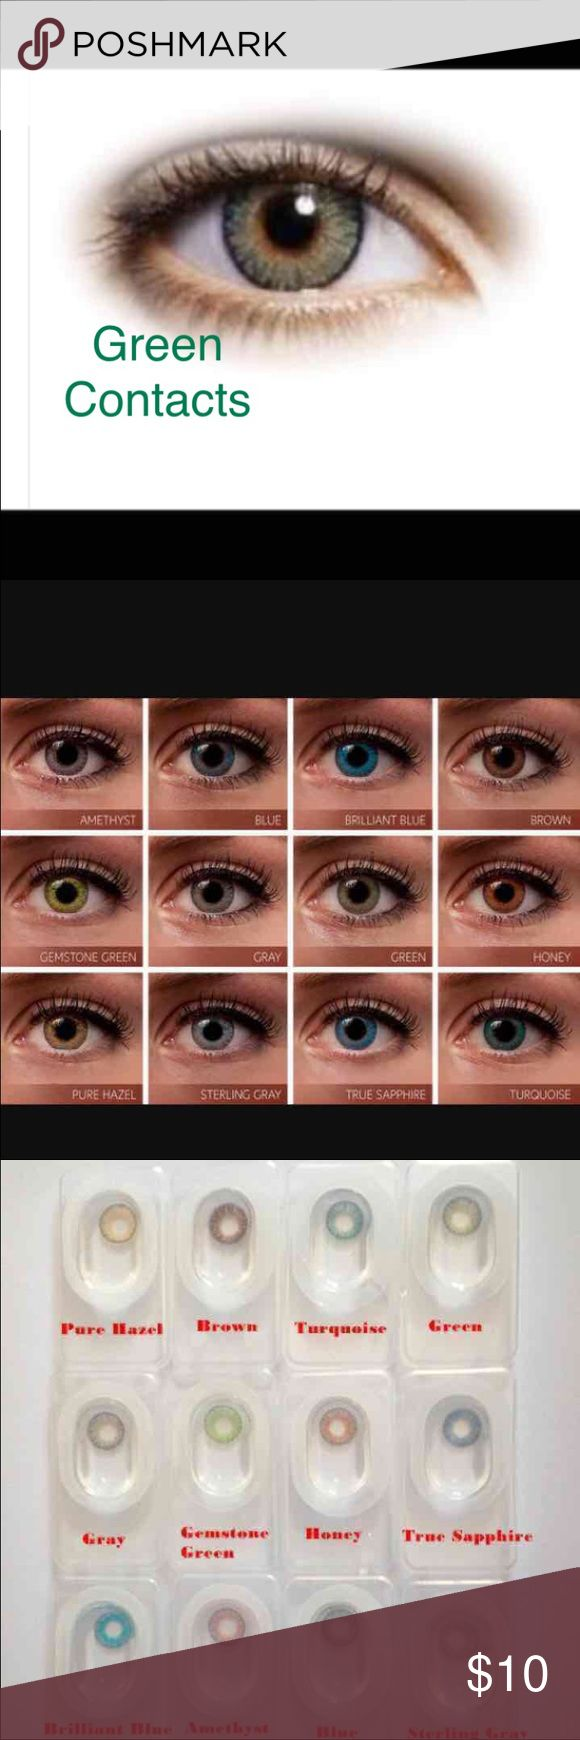 """1 Pair Green Colored Contacts Available Colors All Colors  Please message me what color you would like  One Pair New Reusable Non prescription Bundle and save...  2 pair =$18  3Pair = $27  """"FreshLook Colorblends contact lenses offer a wide palette of beautiful colors to enhance your eye color in a natural way.  Condition: Brand new Brand: FreshLook Colorblends Expiration: 2020 Diameter: 14.5 Price per box: 1 box = 1 pair Shipping: Same day or Next day   Nike, Victoria Secret   Tags: High…"""